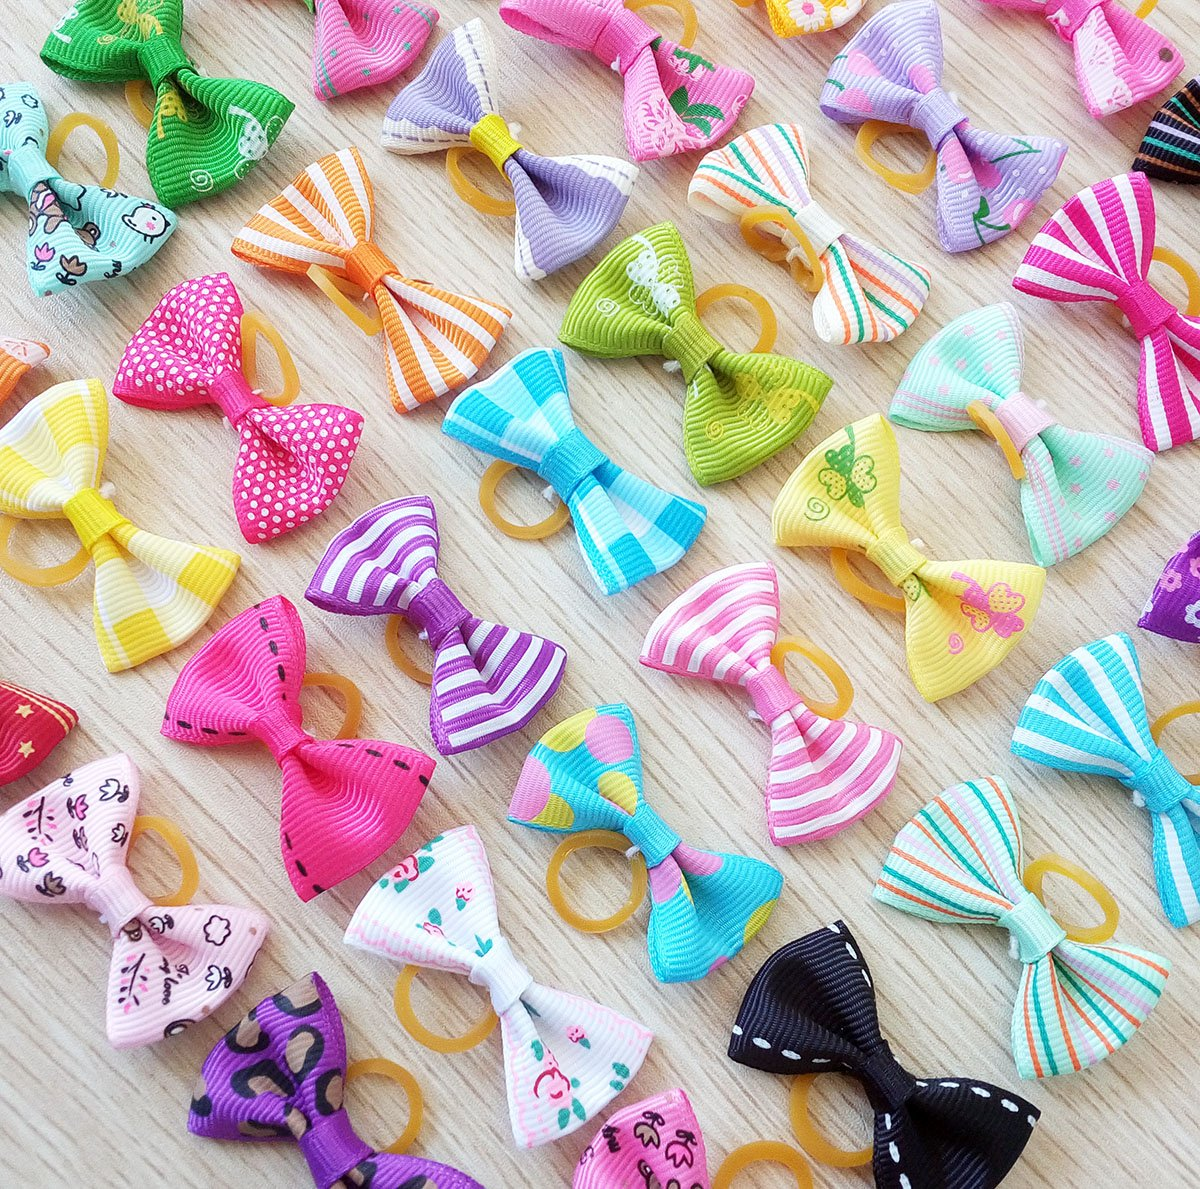 PET SHOW Pet Dog Hair Bows Bowknot for Yorkshire Girls Topknot with Rubber Bands Cat Puppy Headdress Grooming Hair Accessories Random color Pack of 50pcs = 25pairs by PET SHOW (Image #3)